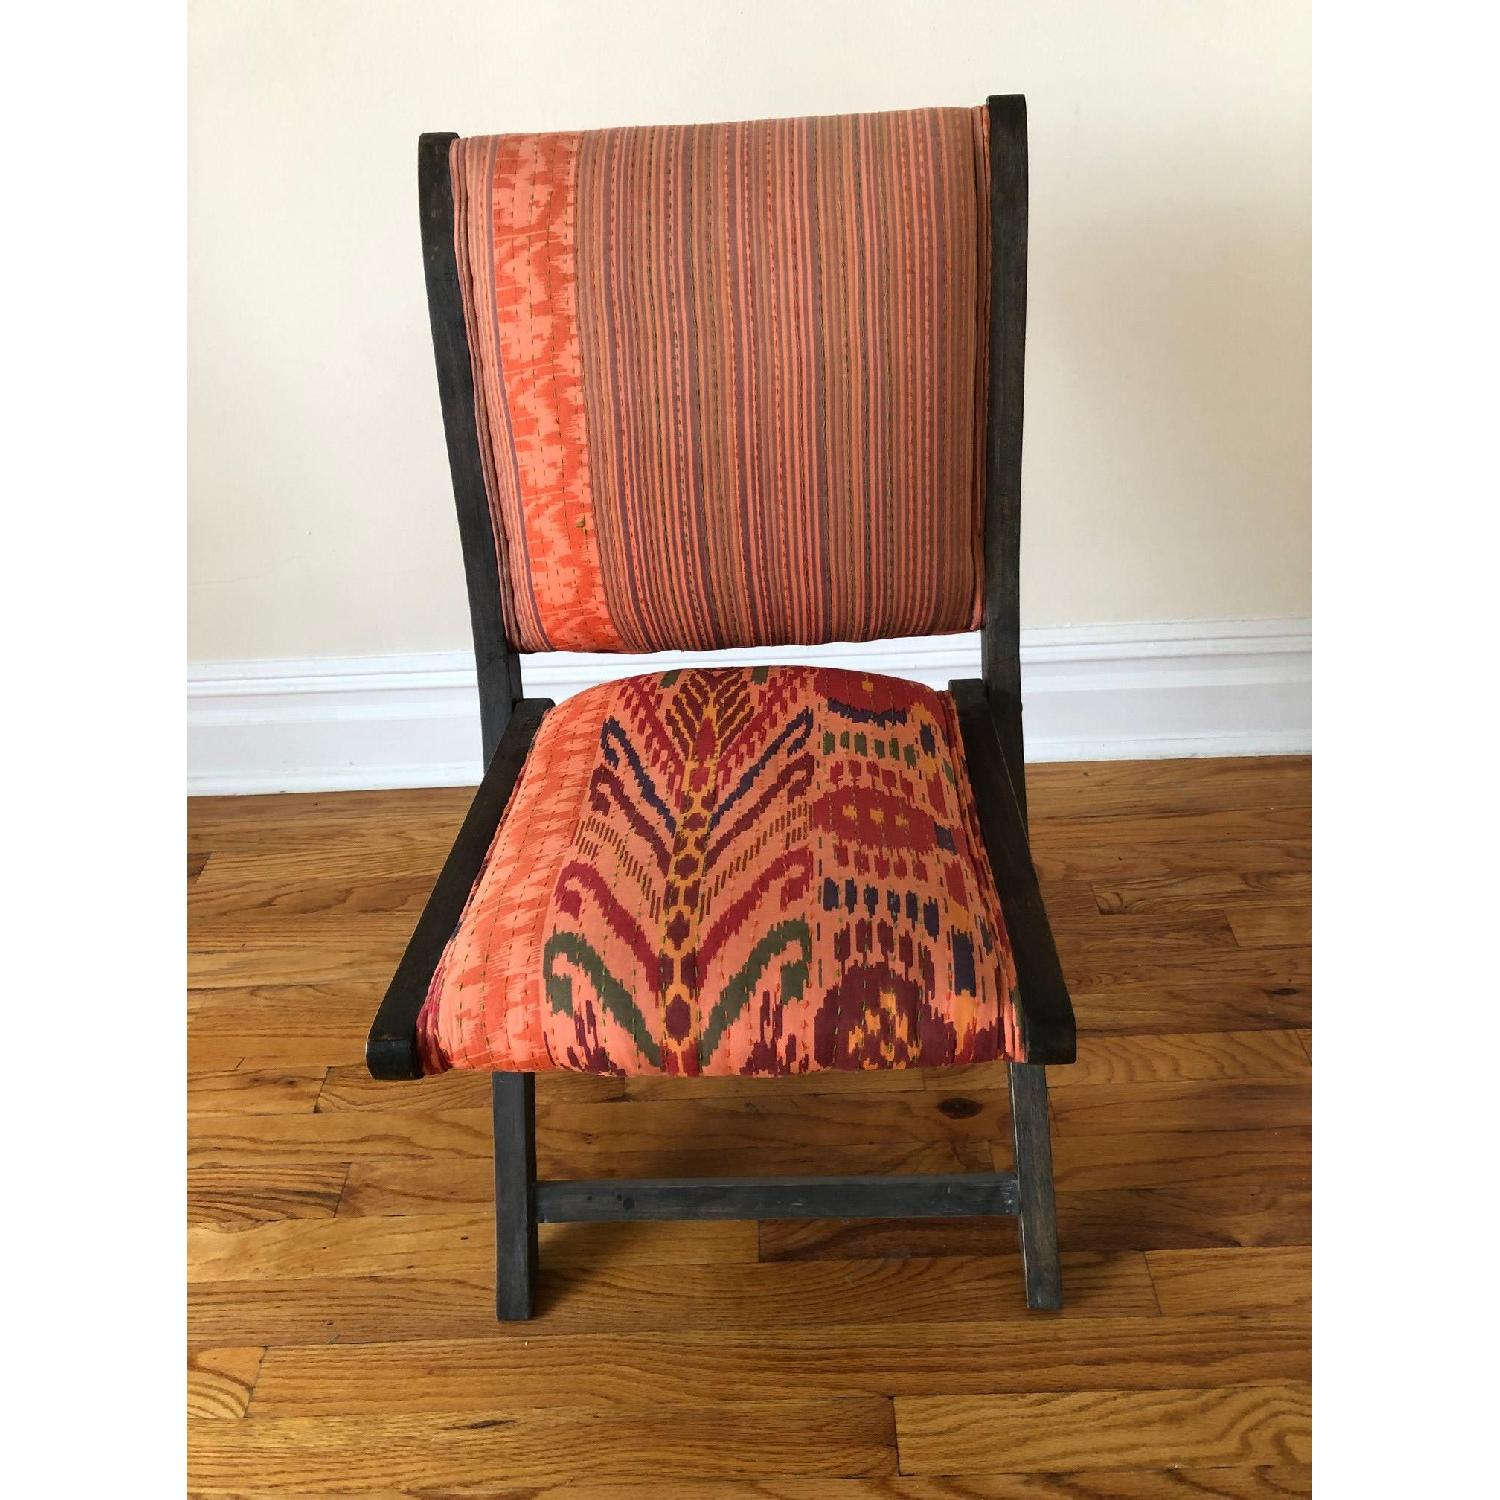 Marvelous Anthropologie Terai Folding Chair In Red Ikat Aptdeco Onthecornerstone Fun Painted Chair Ideas Images Onthecornerstoneorg